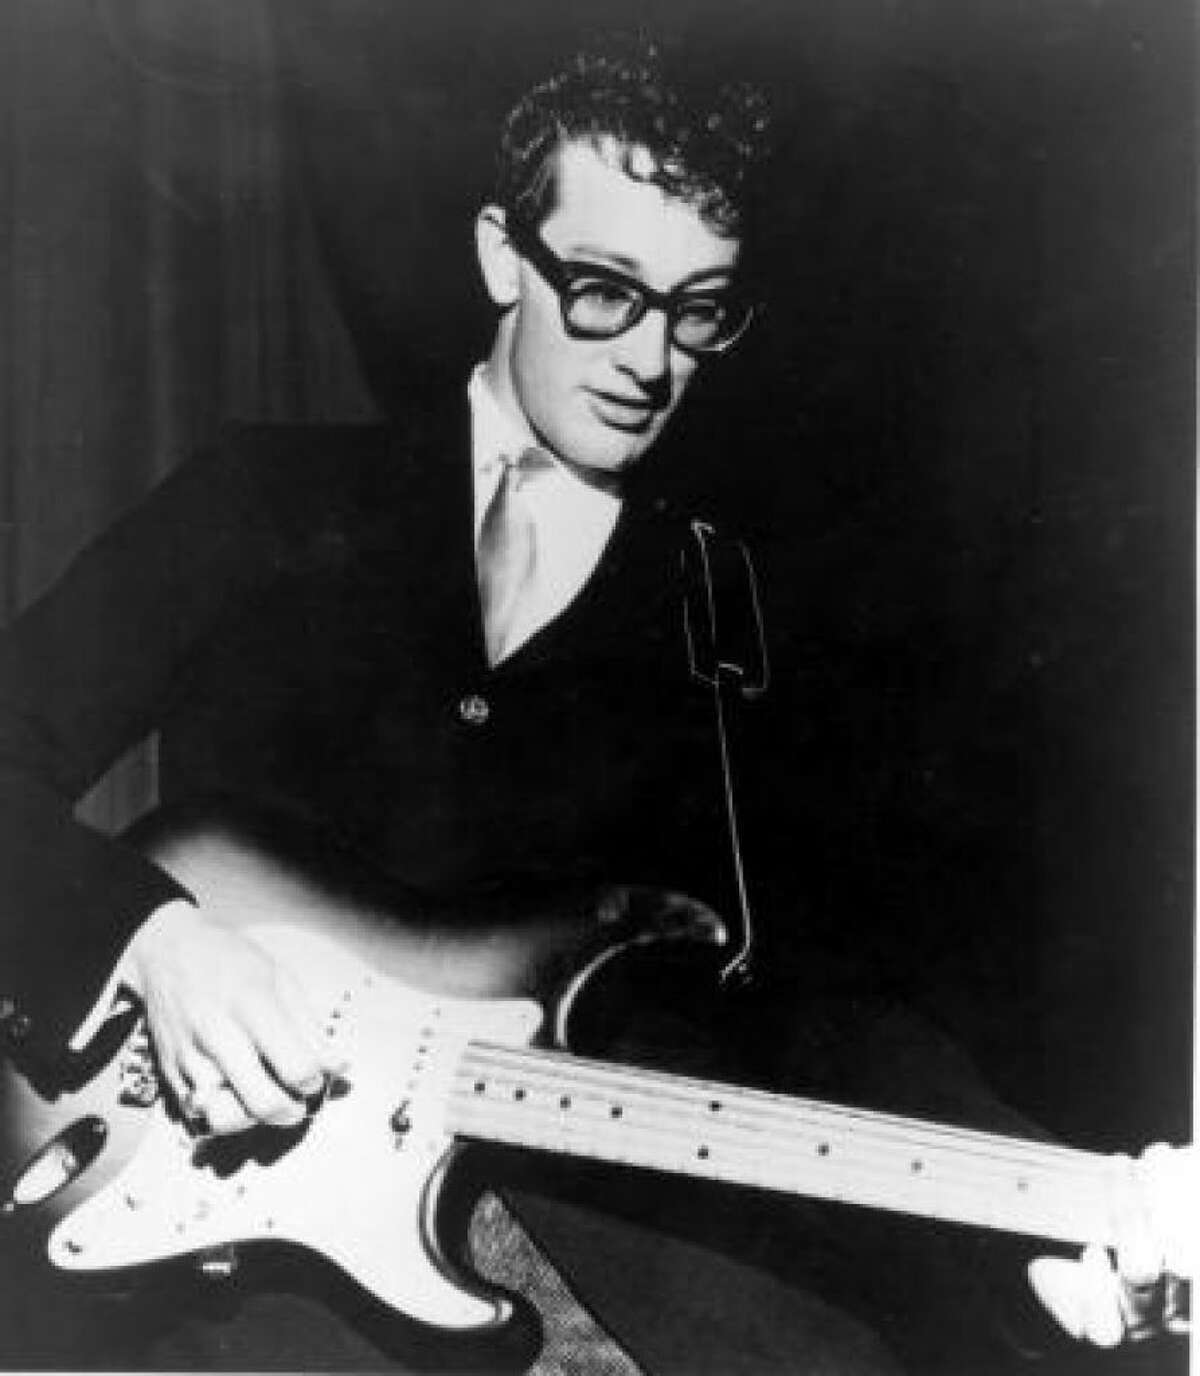 """Fateful day On Feb. 3, 1959, Buddy Holly of Lubbock, J.P. """"Big Bopper"""" Richardson of Beaumont and Ritchie Valens of California, along with their pilot, were killed in the crash of a small charter plane in Clear Lake, Iowa."""